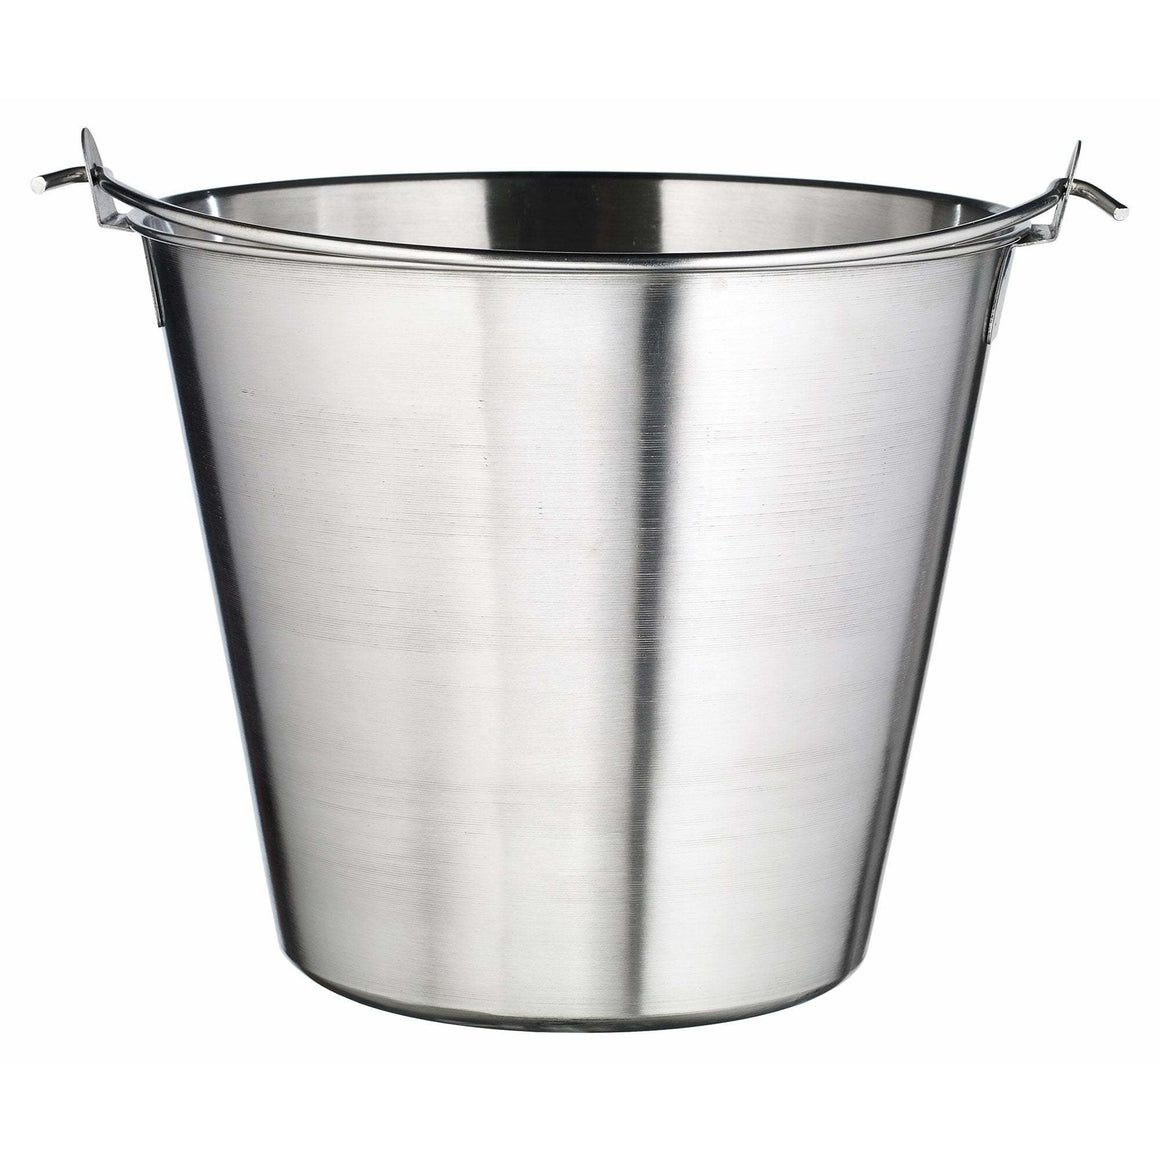 Winco - UP-13 - Utility Pail, 13qt, Stainless Steel - Food Preparation